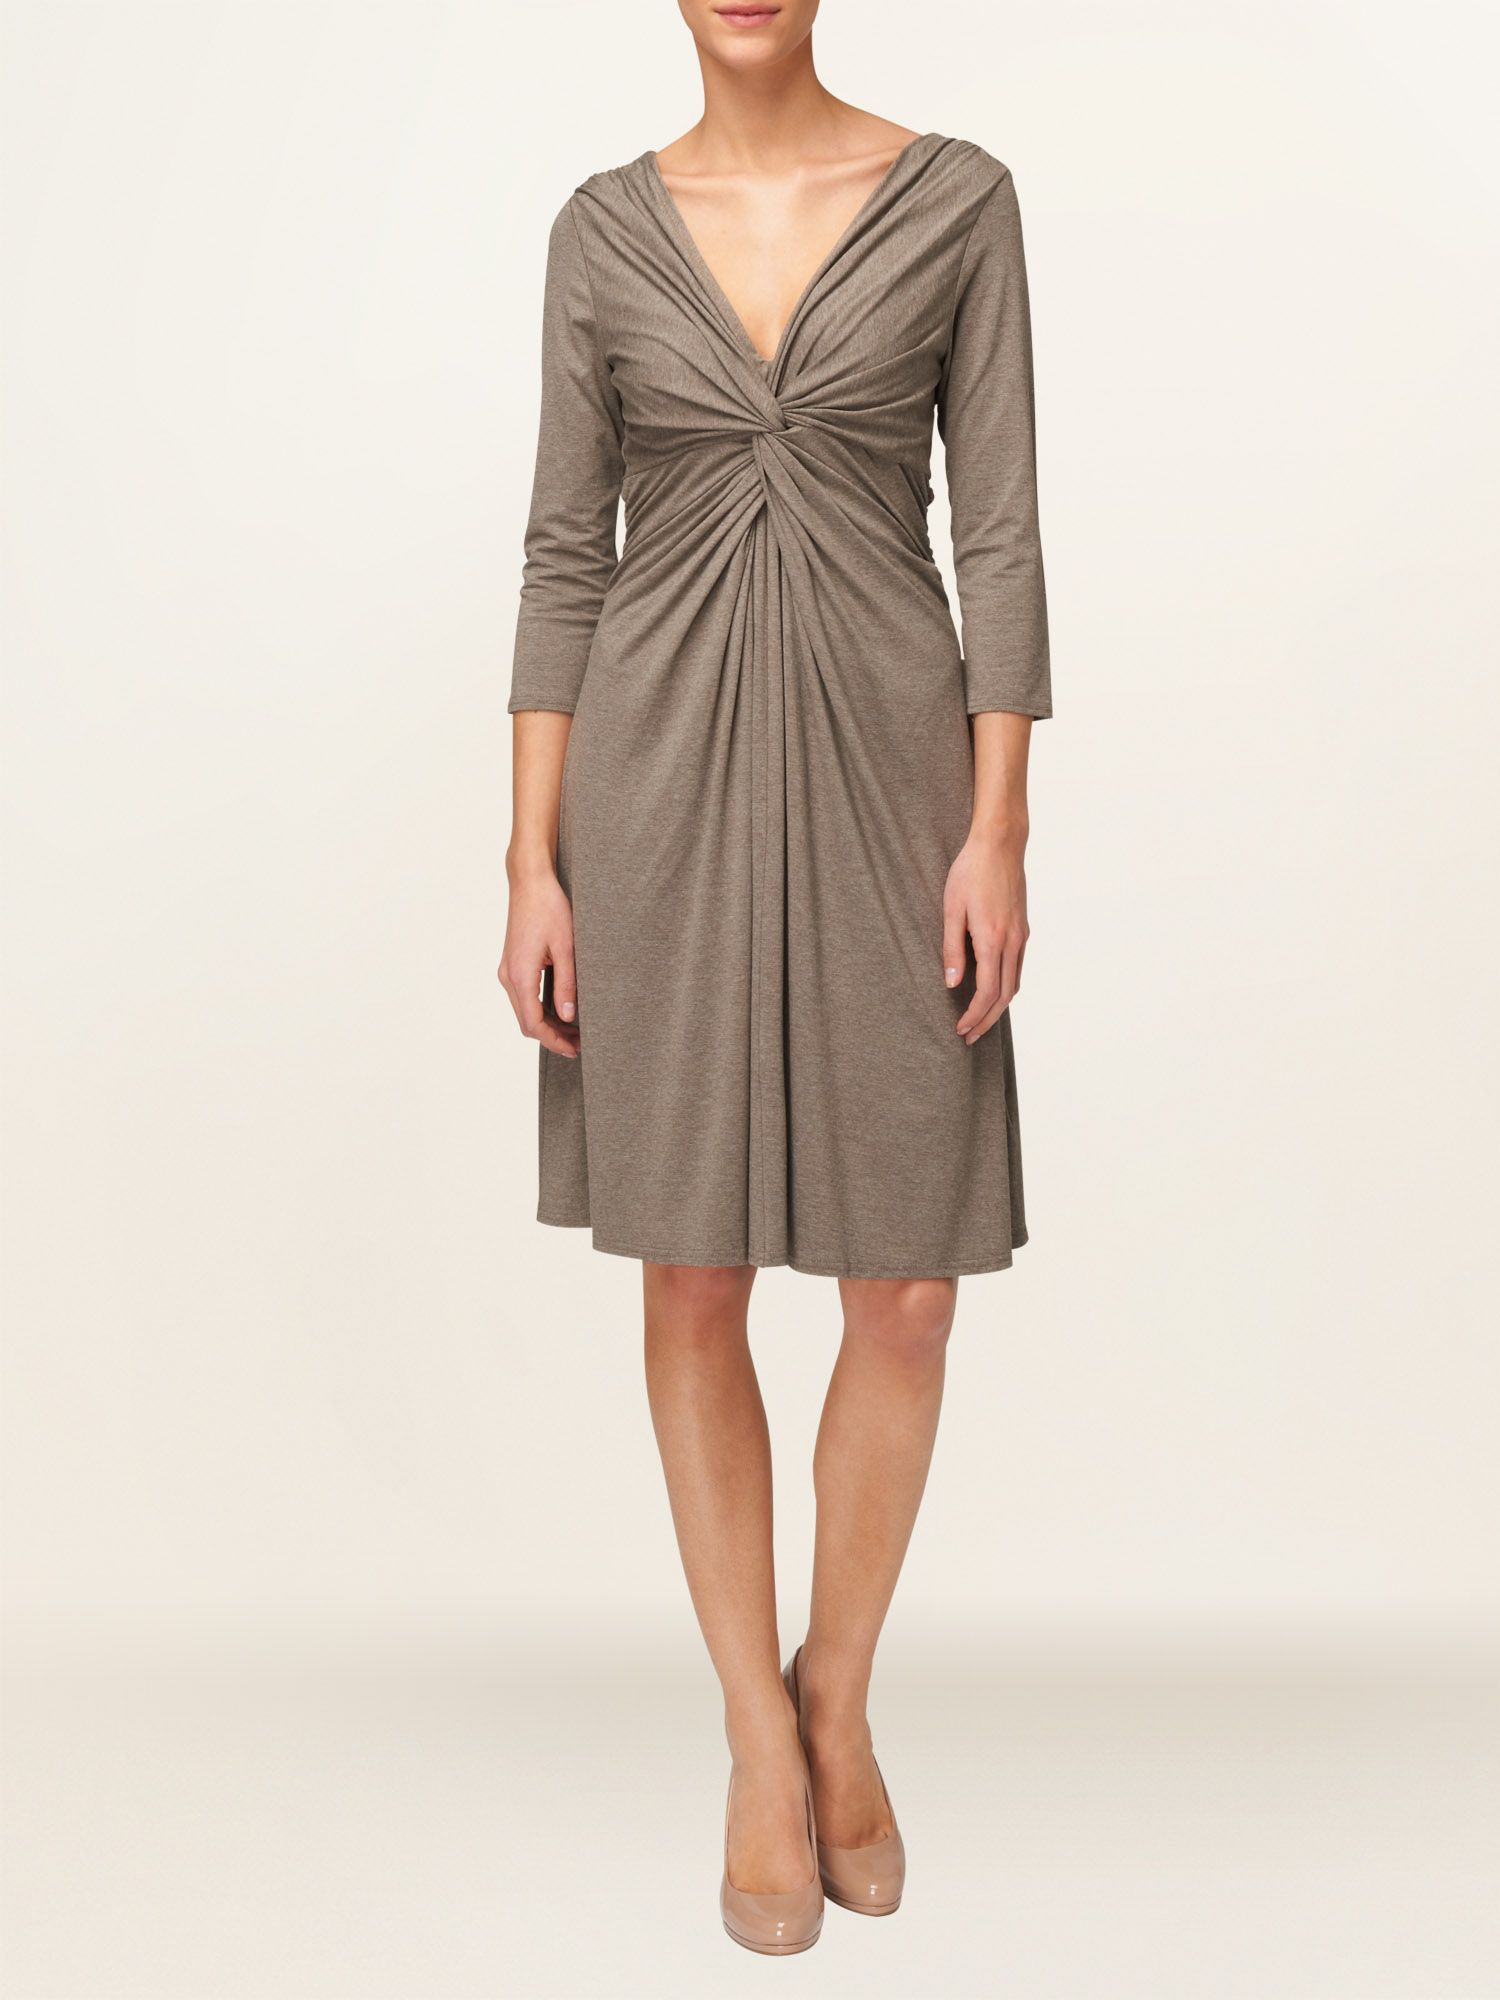 Josie twist front jersey dress